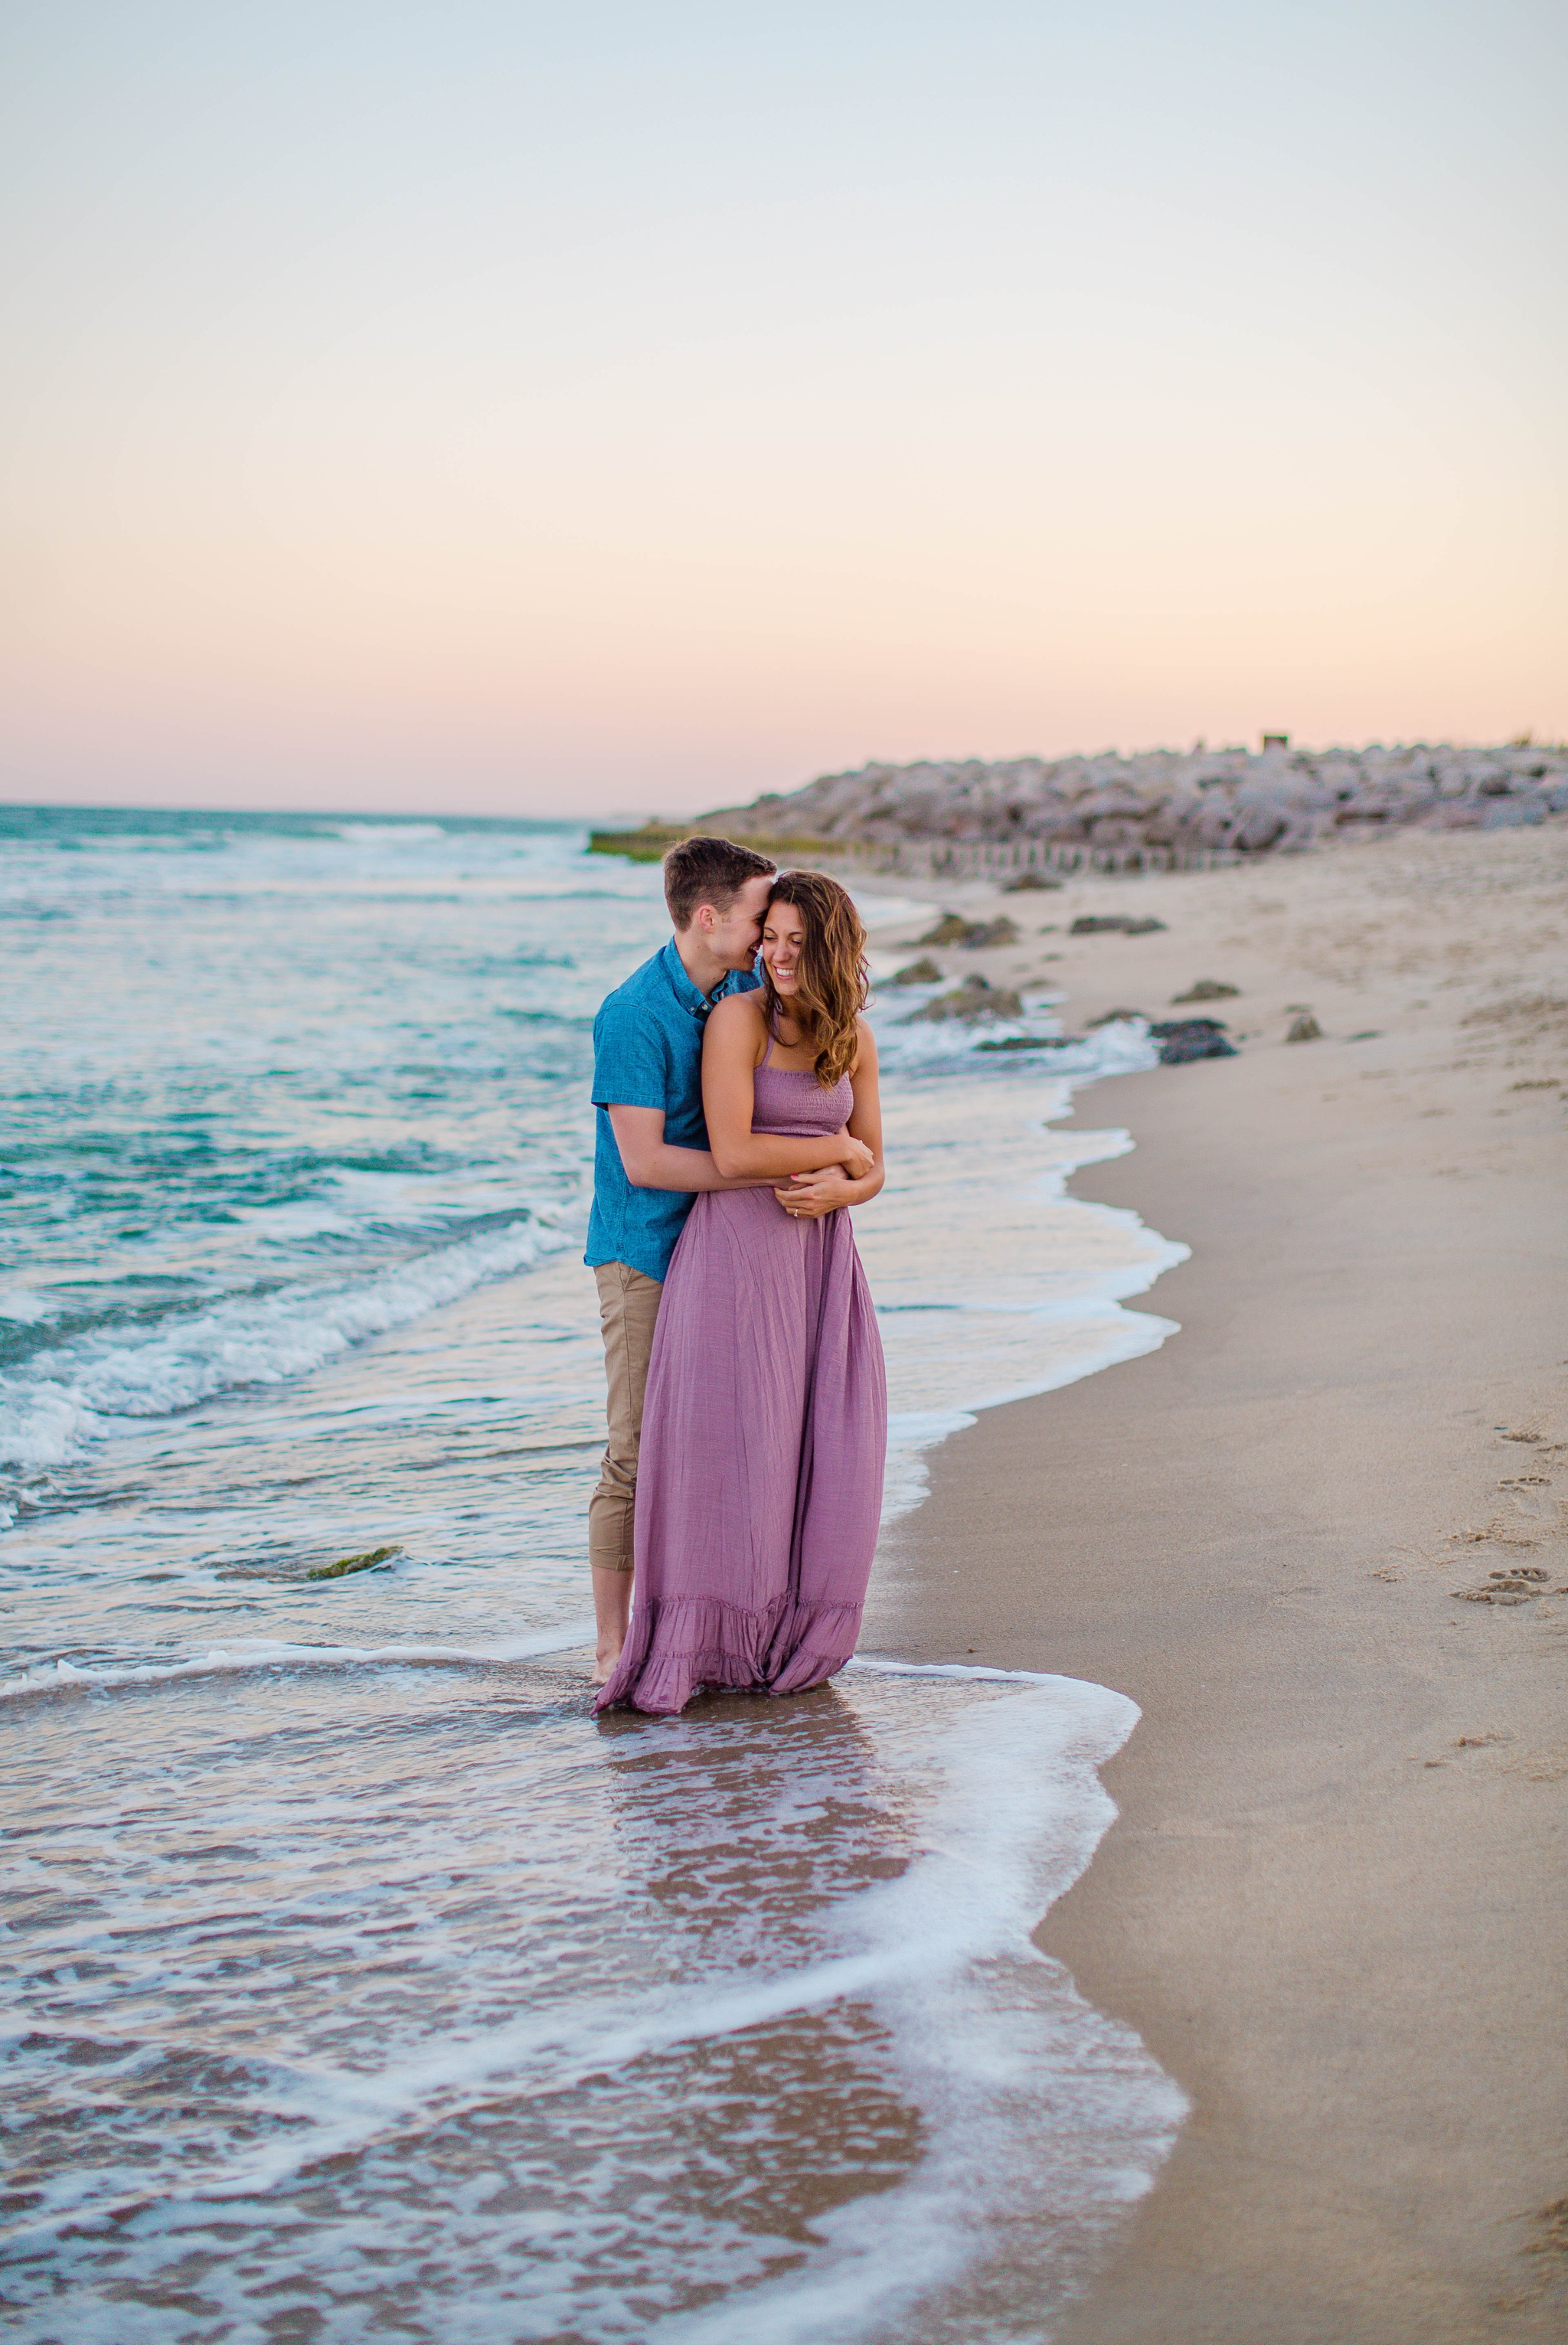 man and woman standing in the water and cuddling - - Woman is in a flowy pastel maxi dress - candid and unposed golden light session - beach engagement photographer in honolulu, oahu, hawaii - johanna dye photography